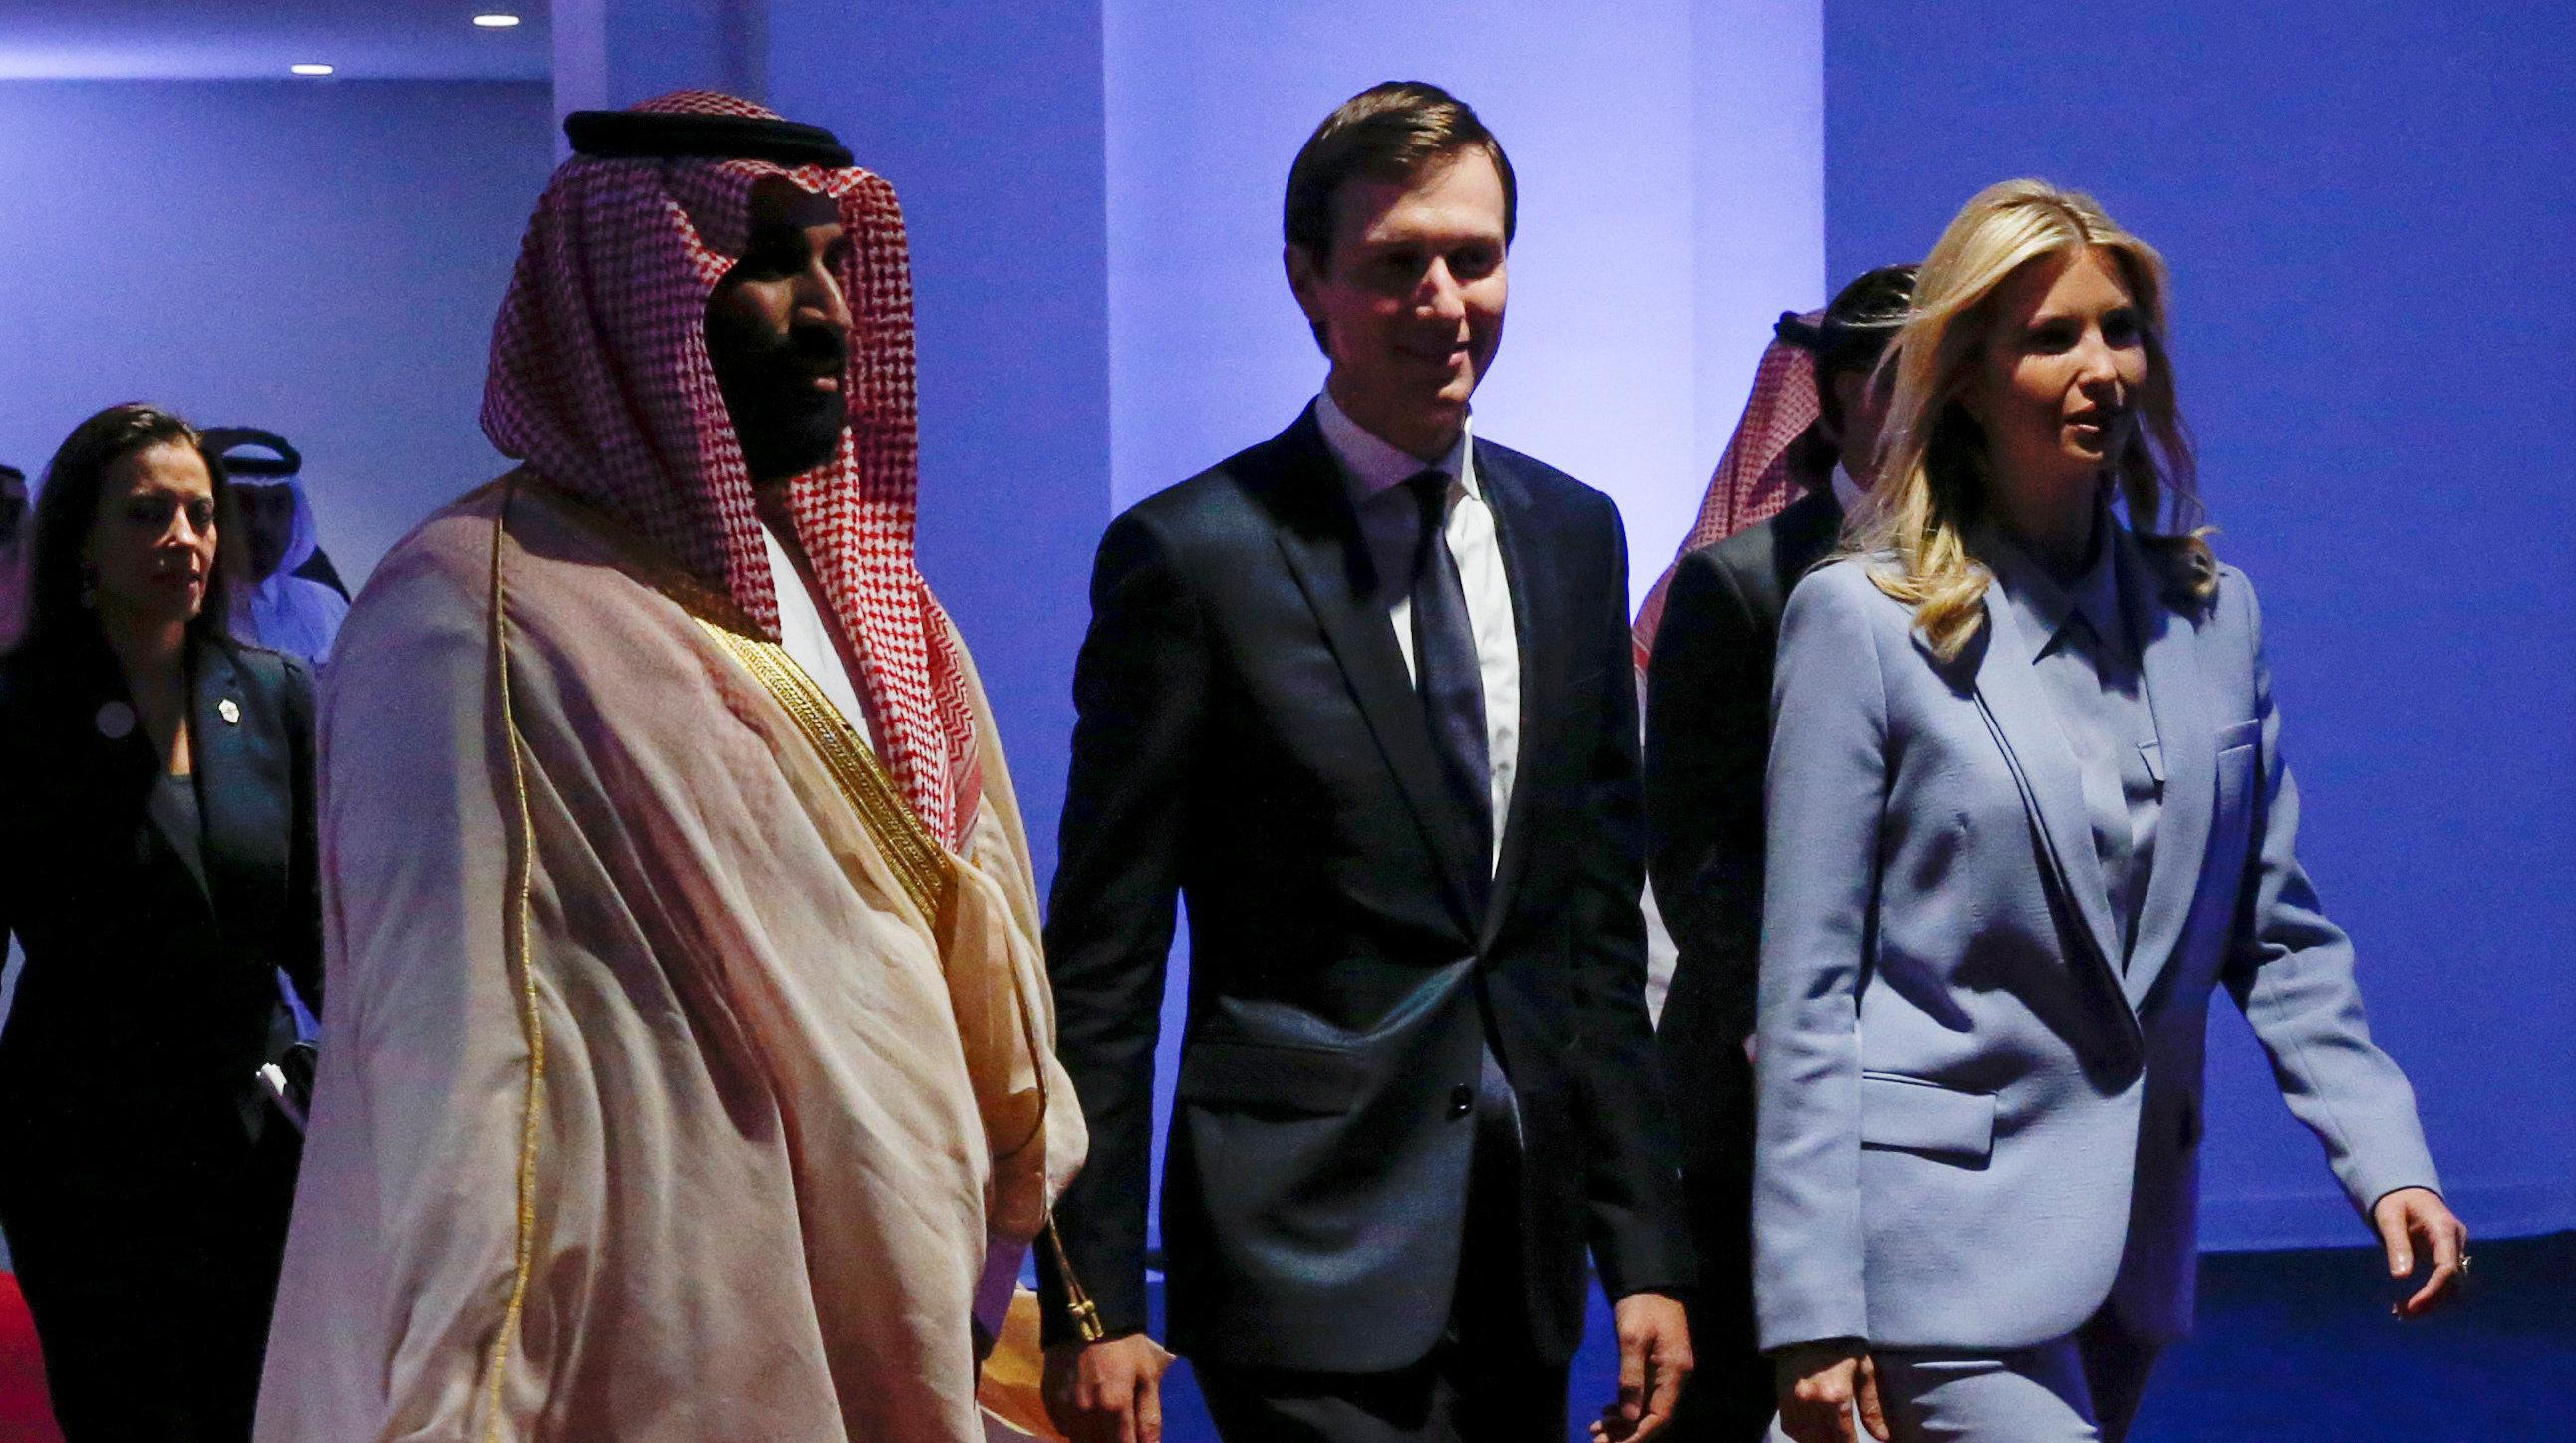 Jared Kushner Dodges Questions About Saudi Account Of Jamal Khashoggi's Death